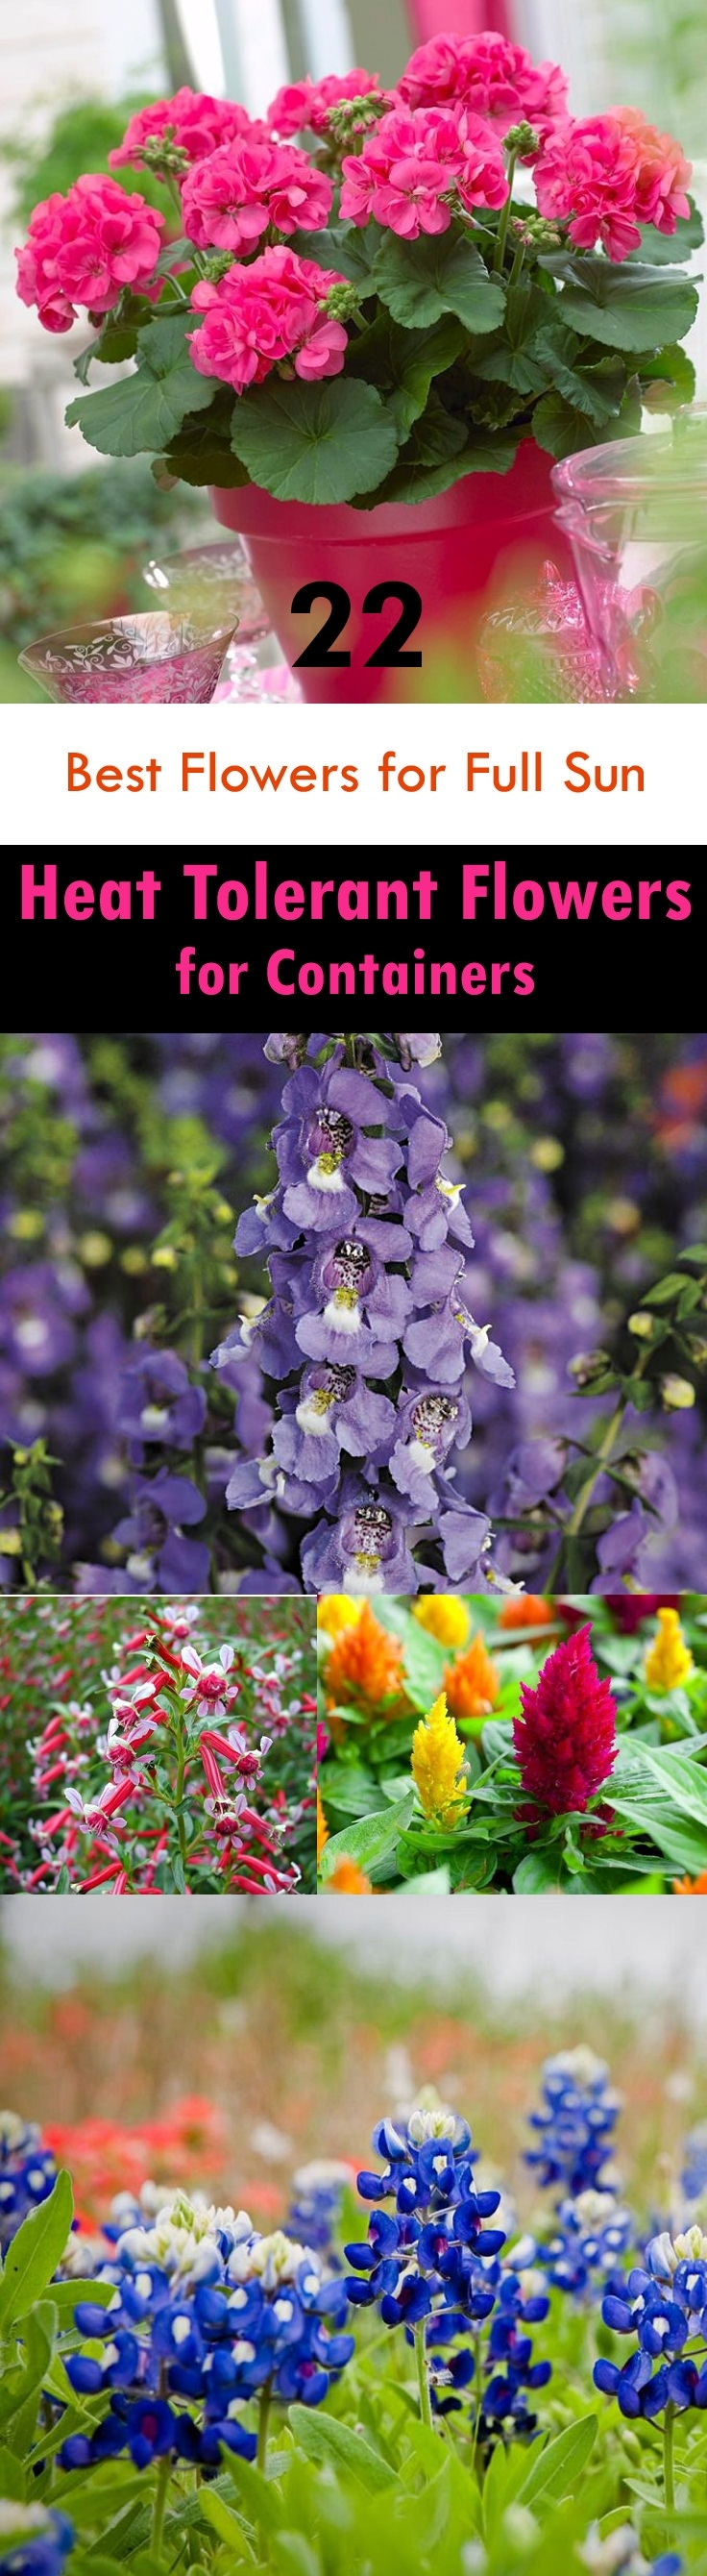 22 Best Flowers For Full Sun   Heat Tolerant Flowers For Containers throughout Garden Flowers That Like Full Sun